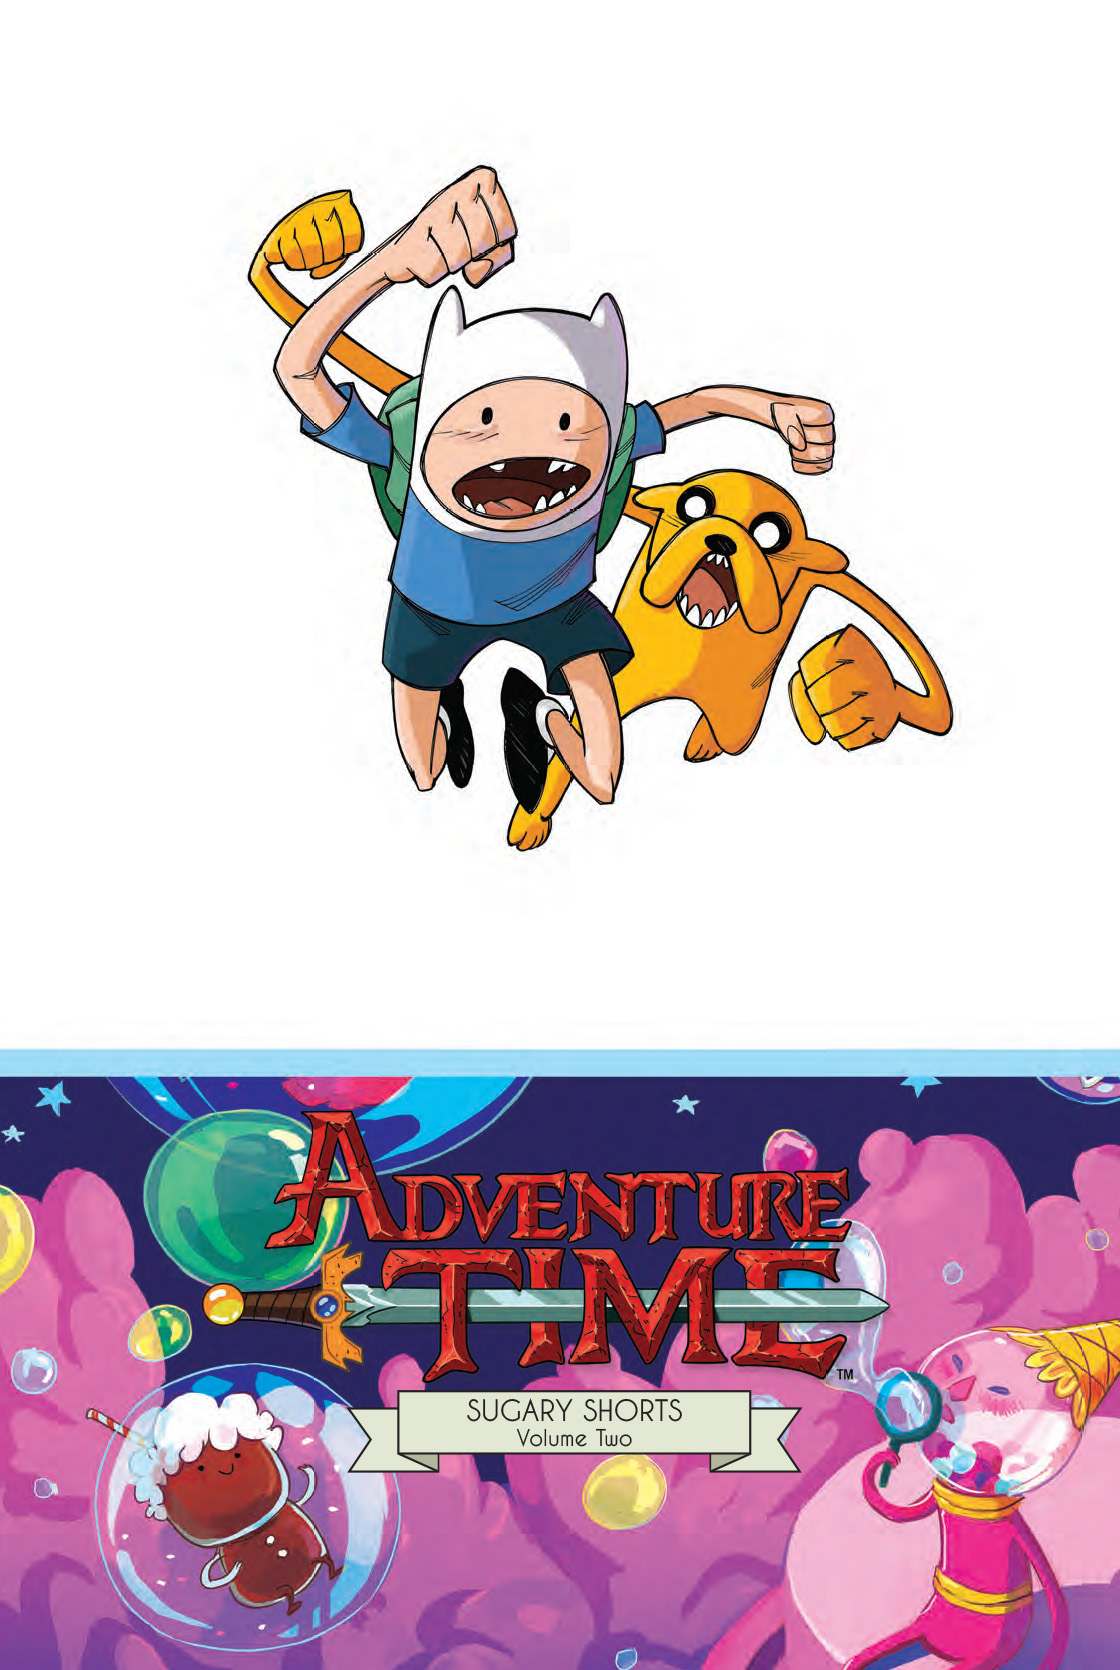 Adventure Time: Sugary Shorts Volume 2 Mathematical Edition HC Preview